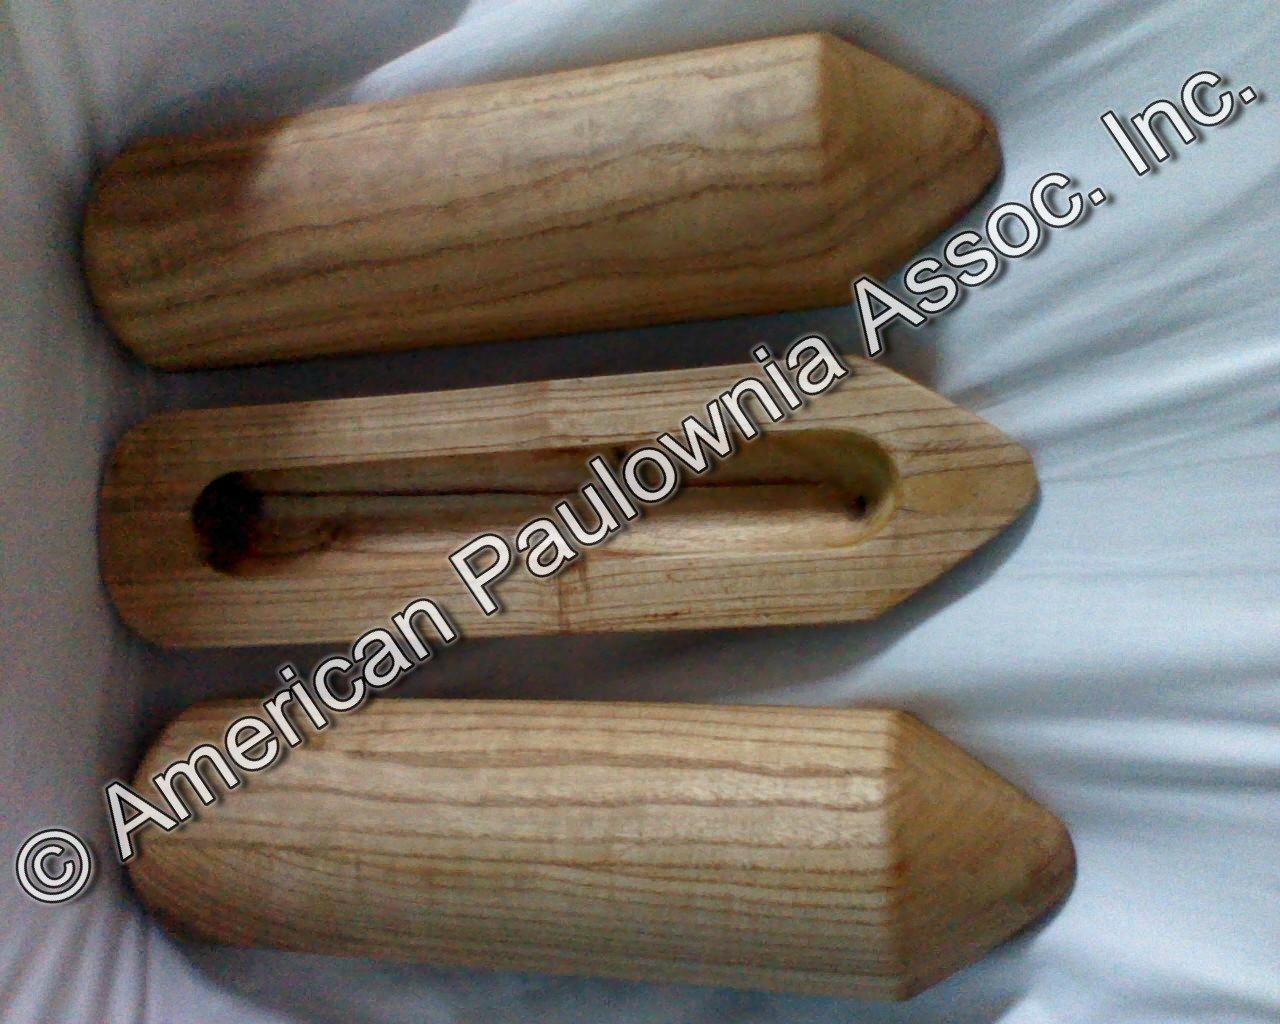 Therapeutic pillows made from Paulownia wood